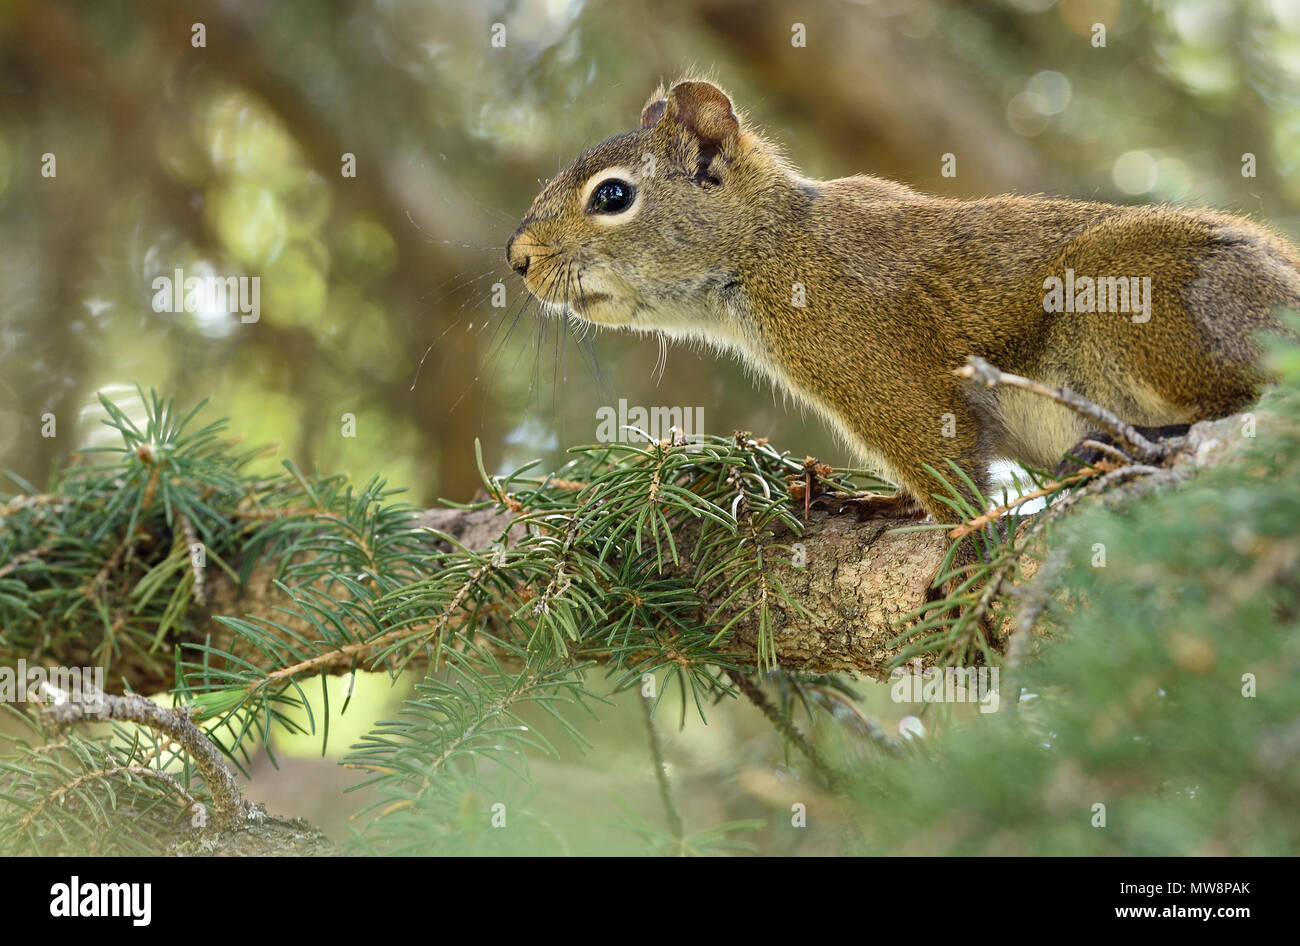 A horizontal side view image of a red squirrel on a tree branch - Stock Image